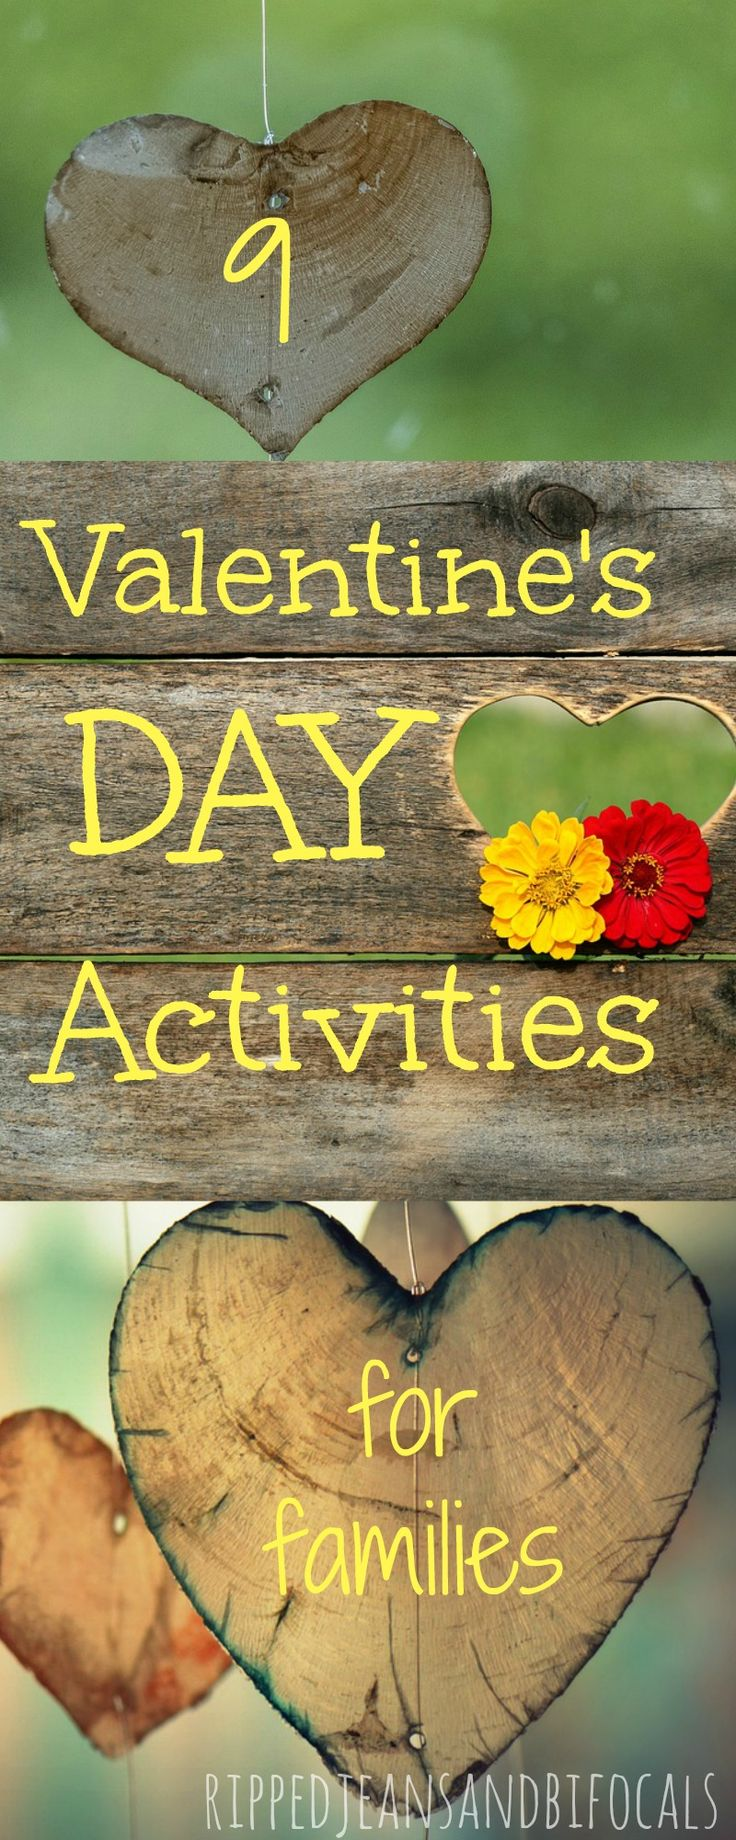 If you think Valentine's Day is only for mushy, lovey-dovey romantic stuff, think again! Here are some fun things you can do as a family for Valentine's Day! |Valentines Day|Valentine's Day for kids|Valentine\s Day for families|Valentine\s Day Activities|Valentine's Day tips|Valentine's Day ideas|